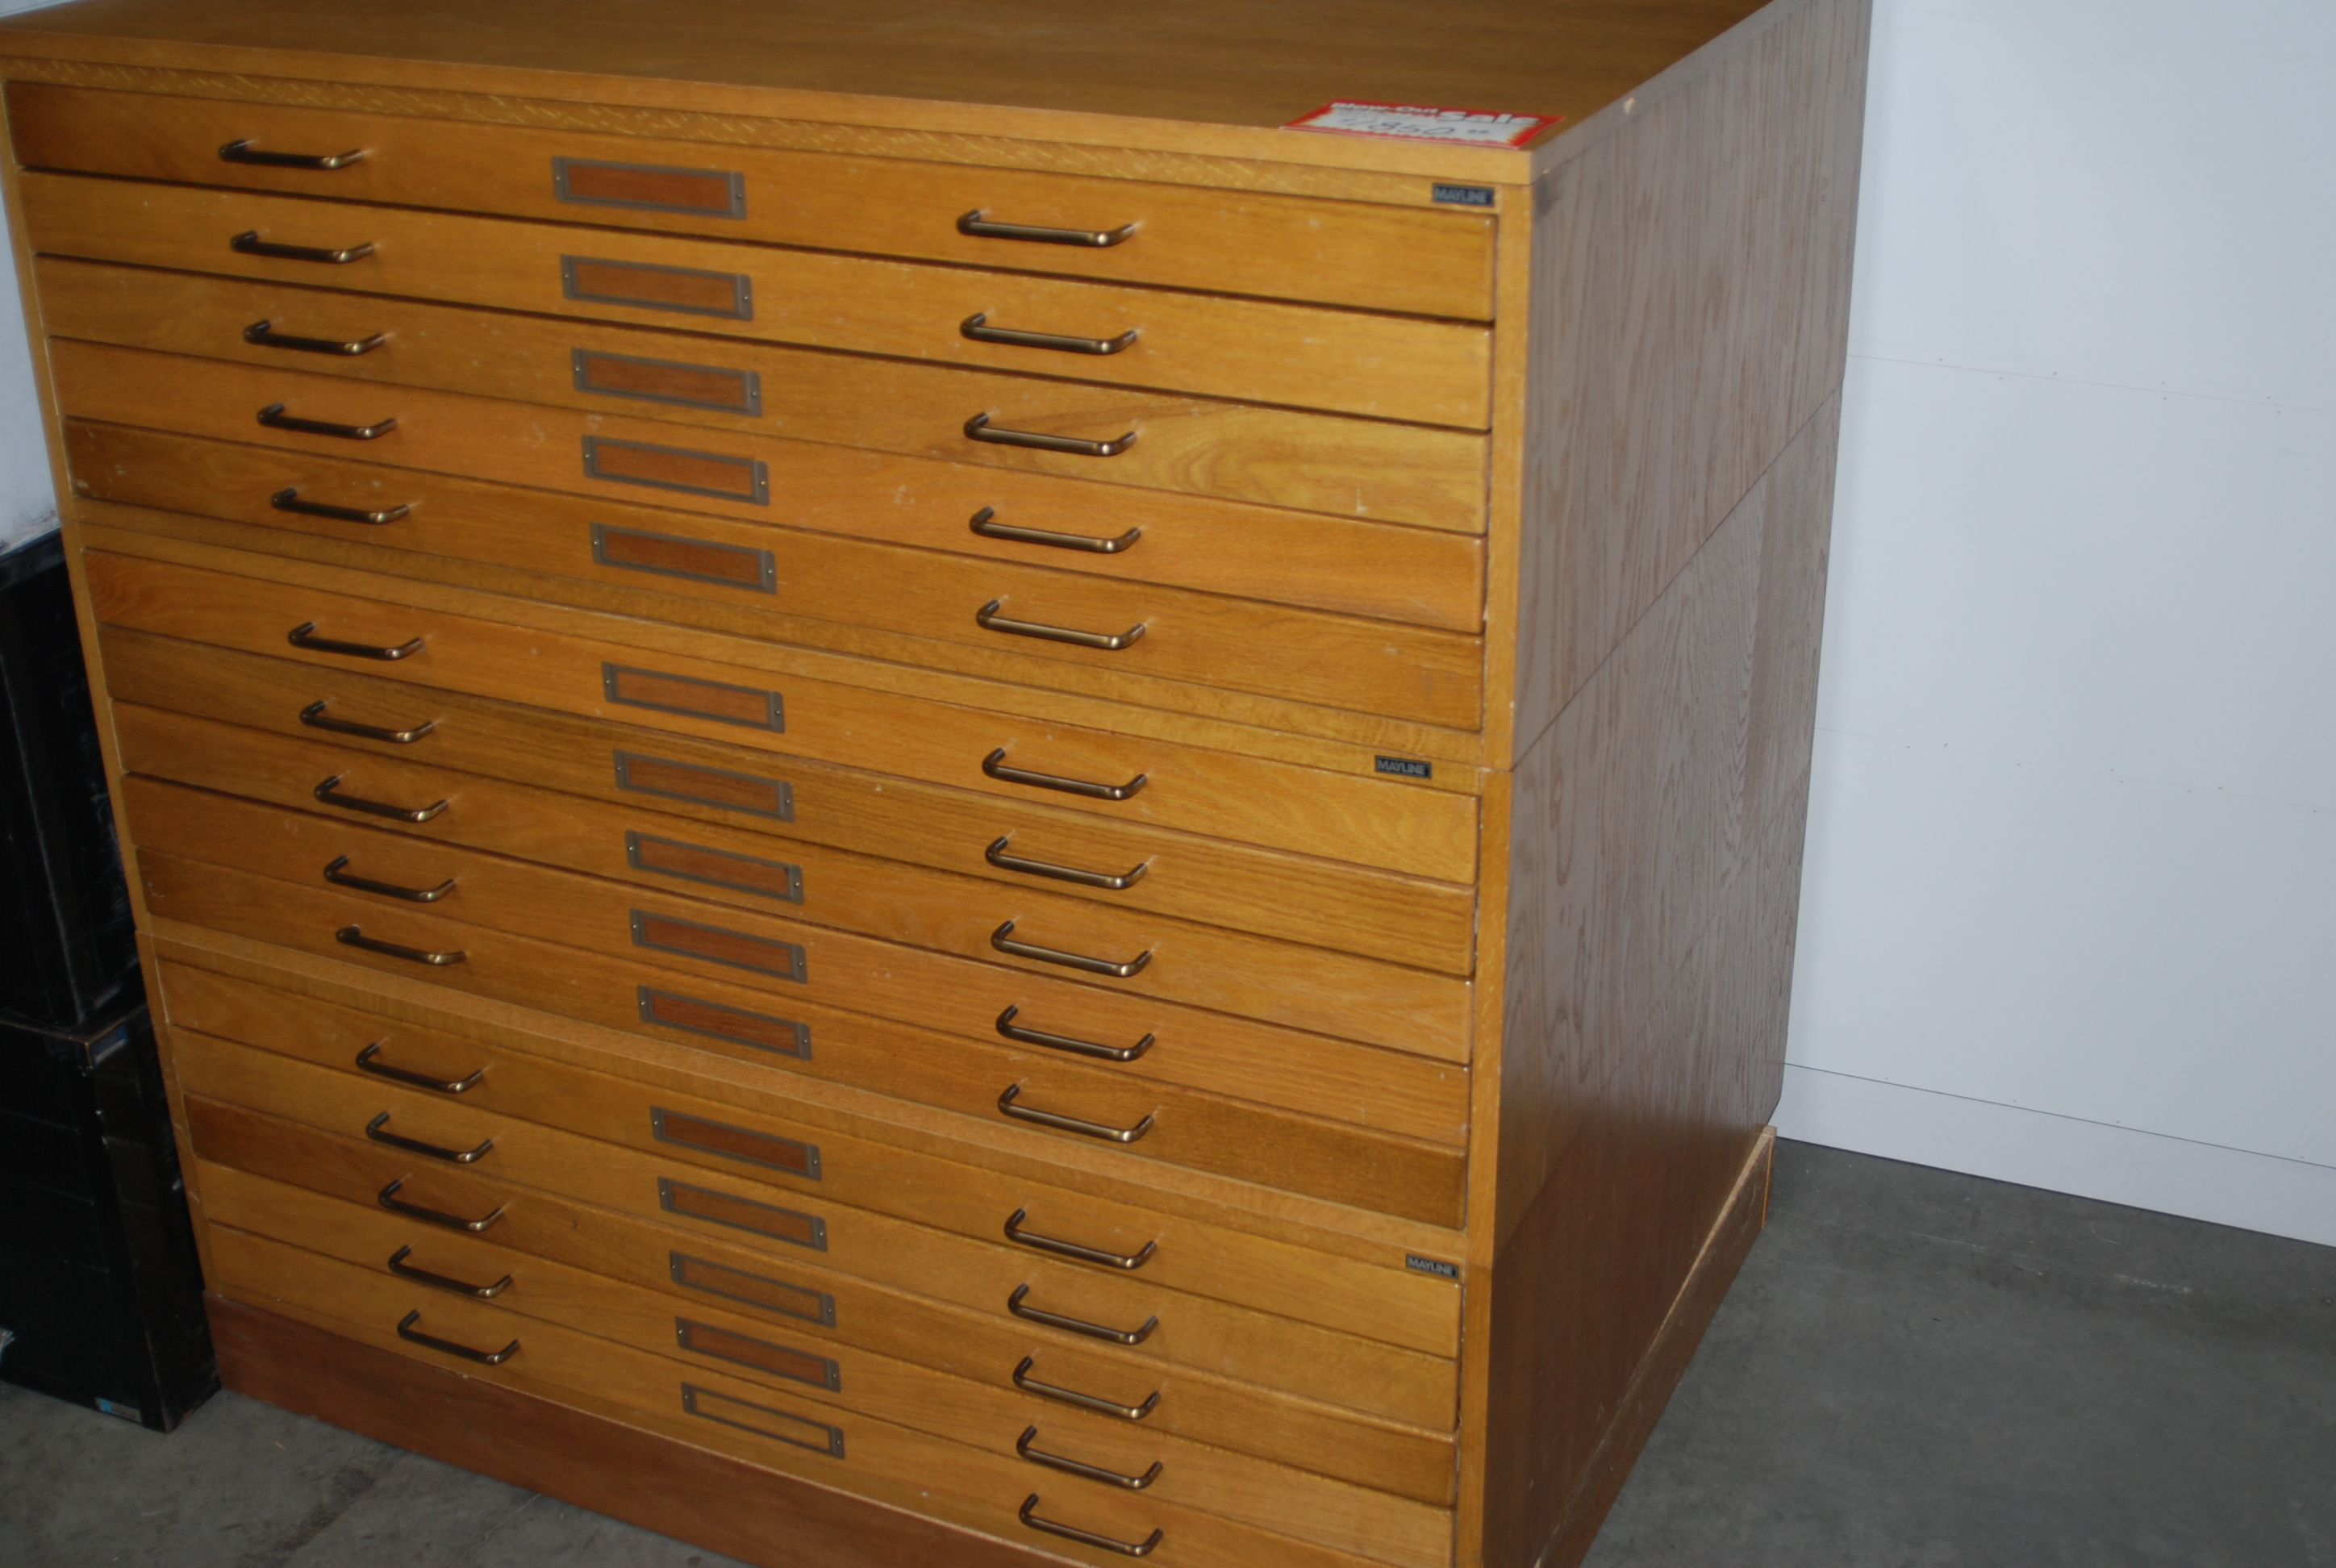 Used flat files roll files plan racks hoppers drafting furniture includes 3 5 drawer files 1 cap and 1 base holds up to 30 x 42 drawings total list price for this new malvernweather